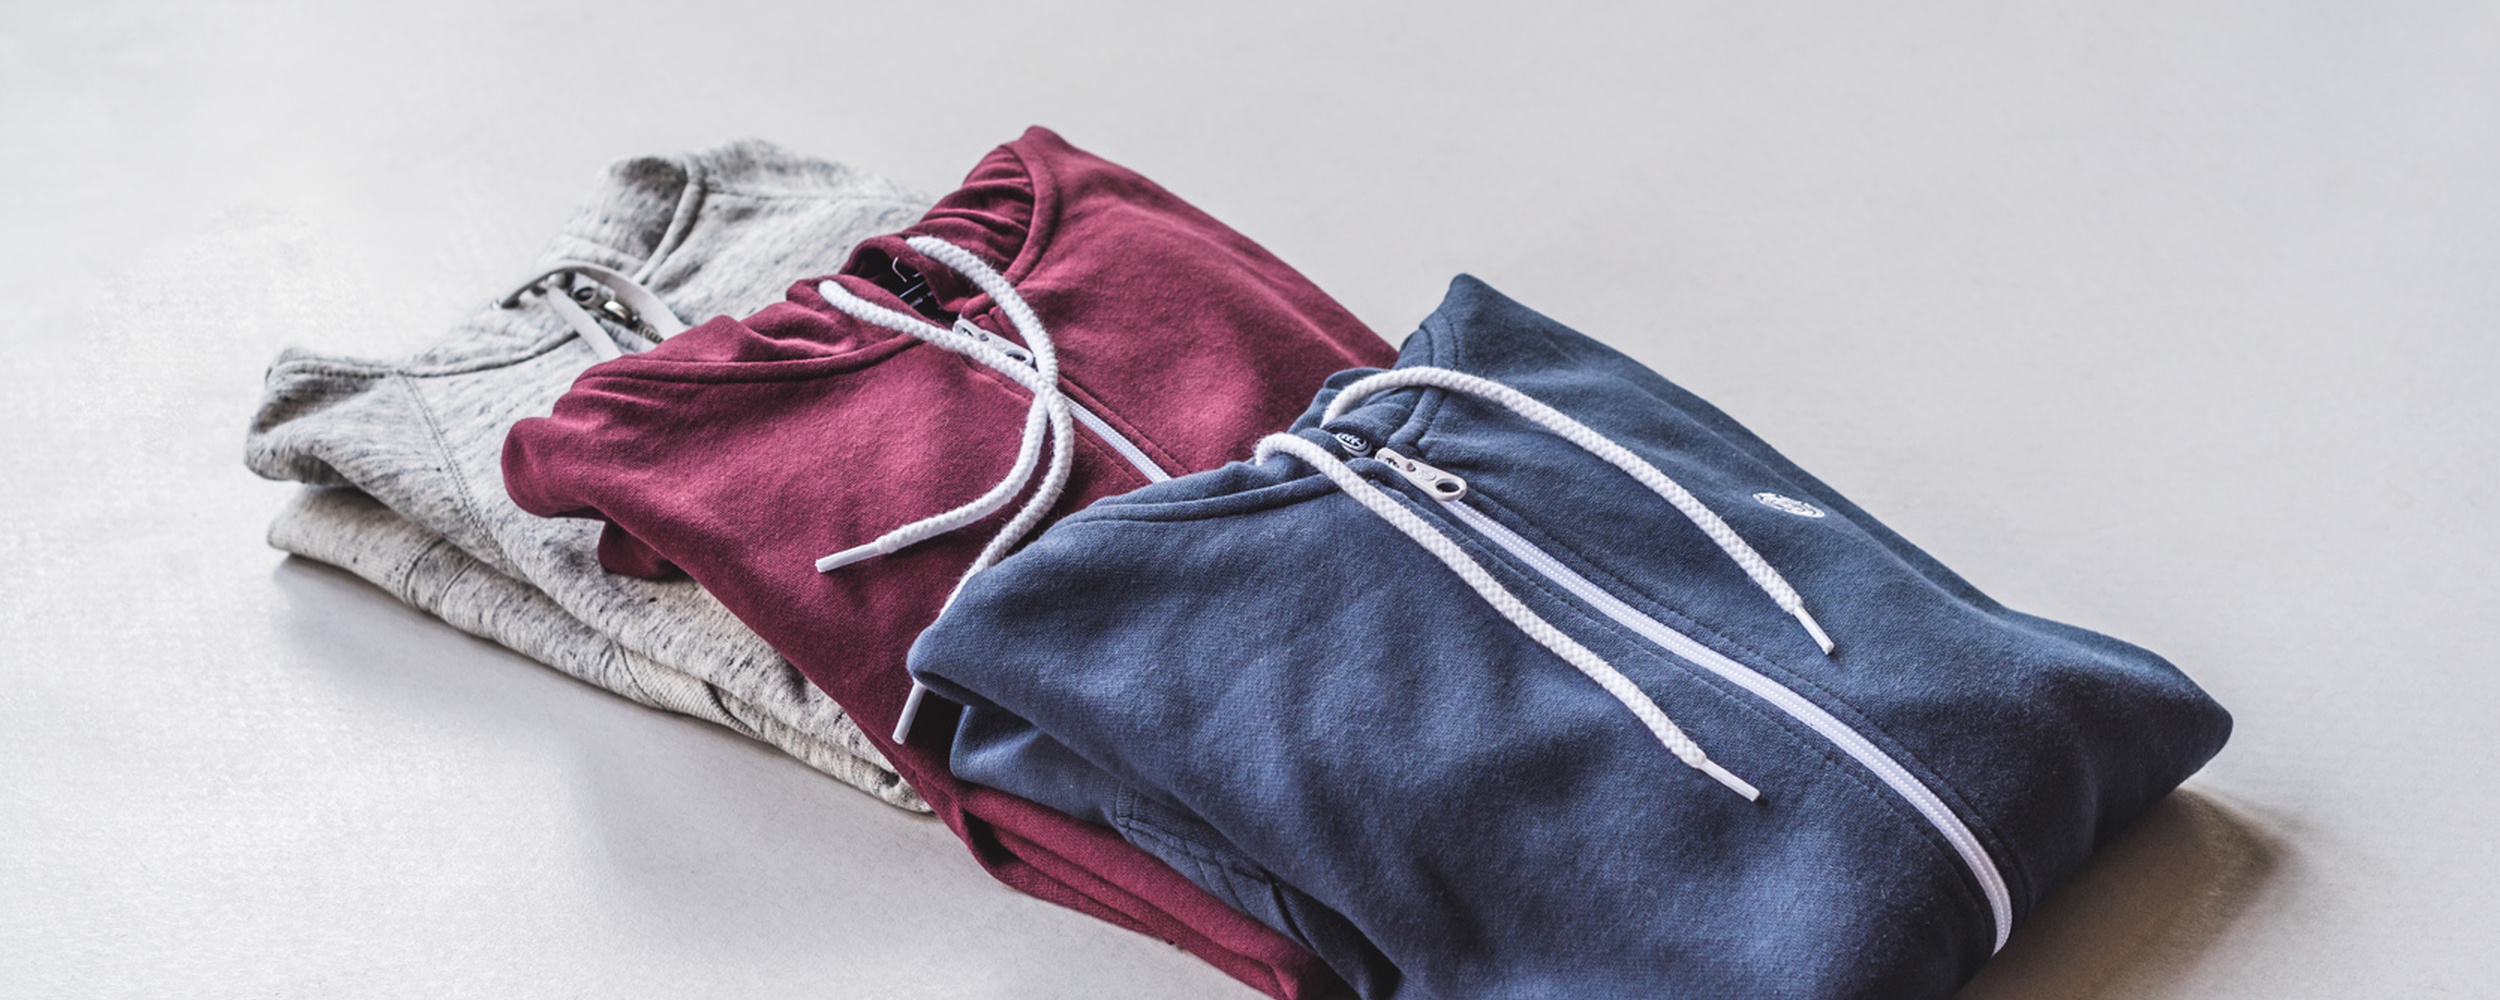 Element Cornell Zip Hoodies in Navy und Napa Rot